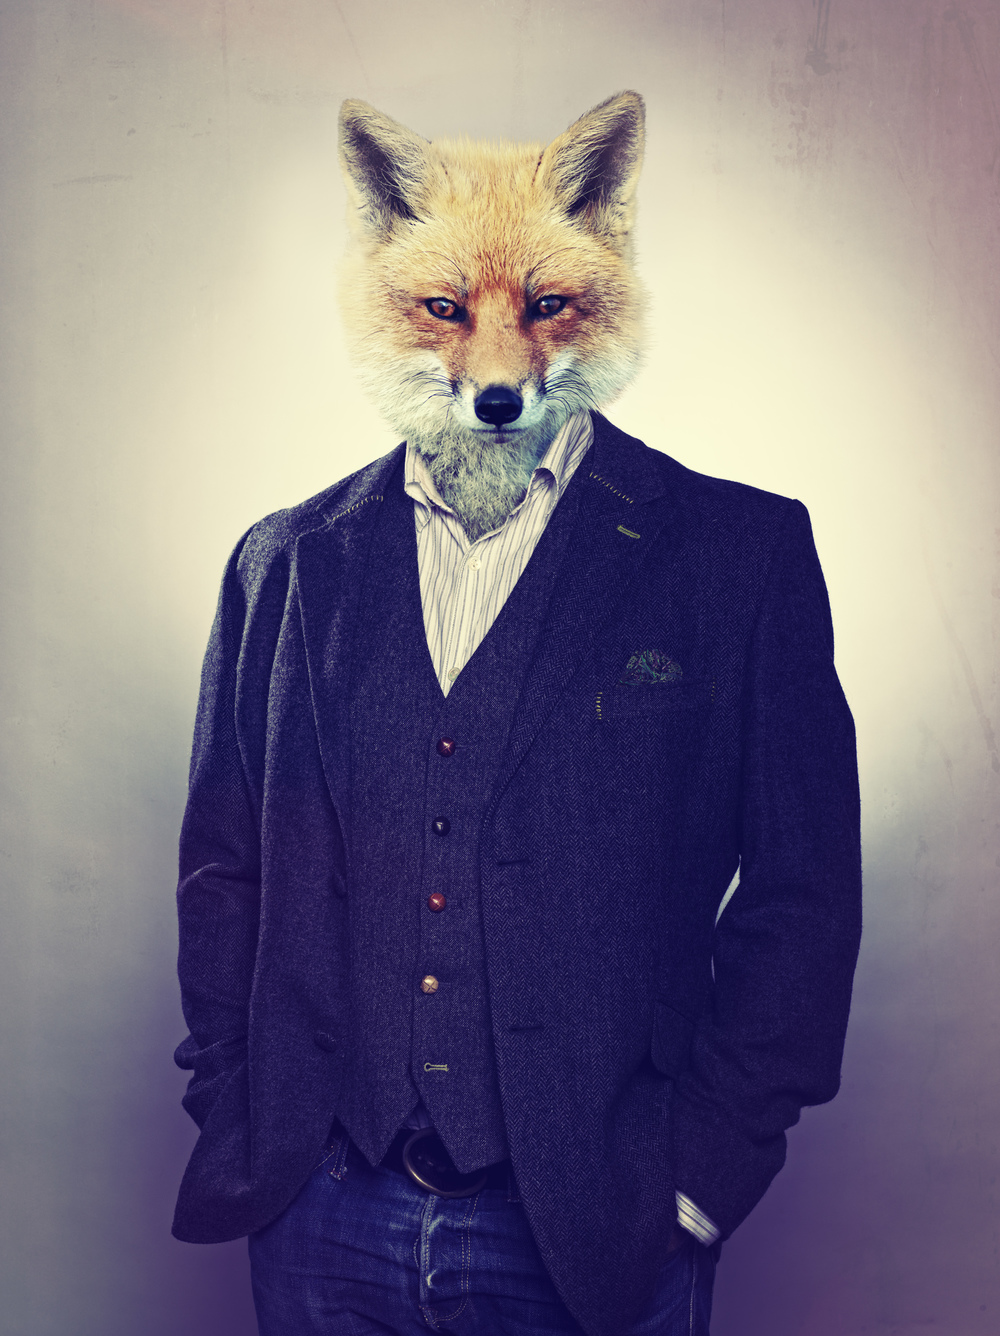 FOX_ANIMAL_HEAD.jpg